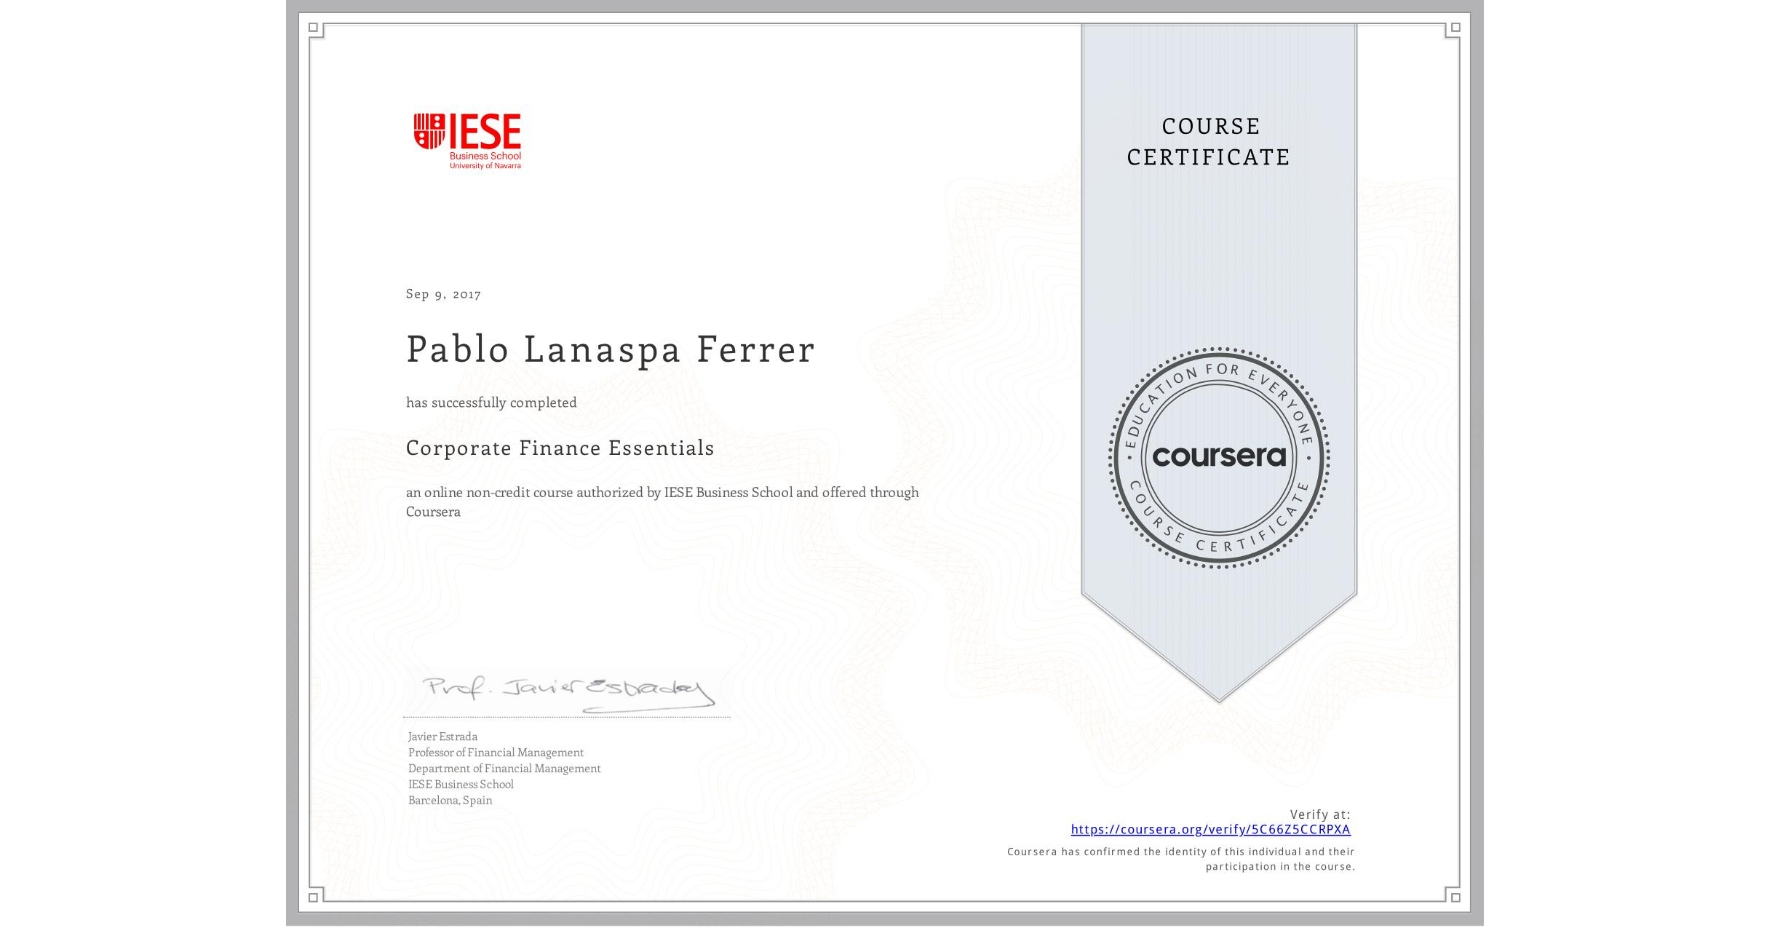 View certificate for Pablo Lanaspa Ferrer, Corporate Finance Essentials, an online non-credit course authorized by IESE Business School and offered through Coursera